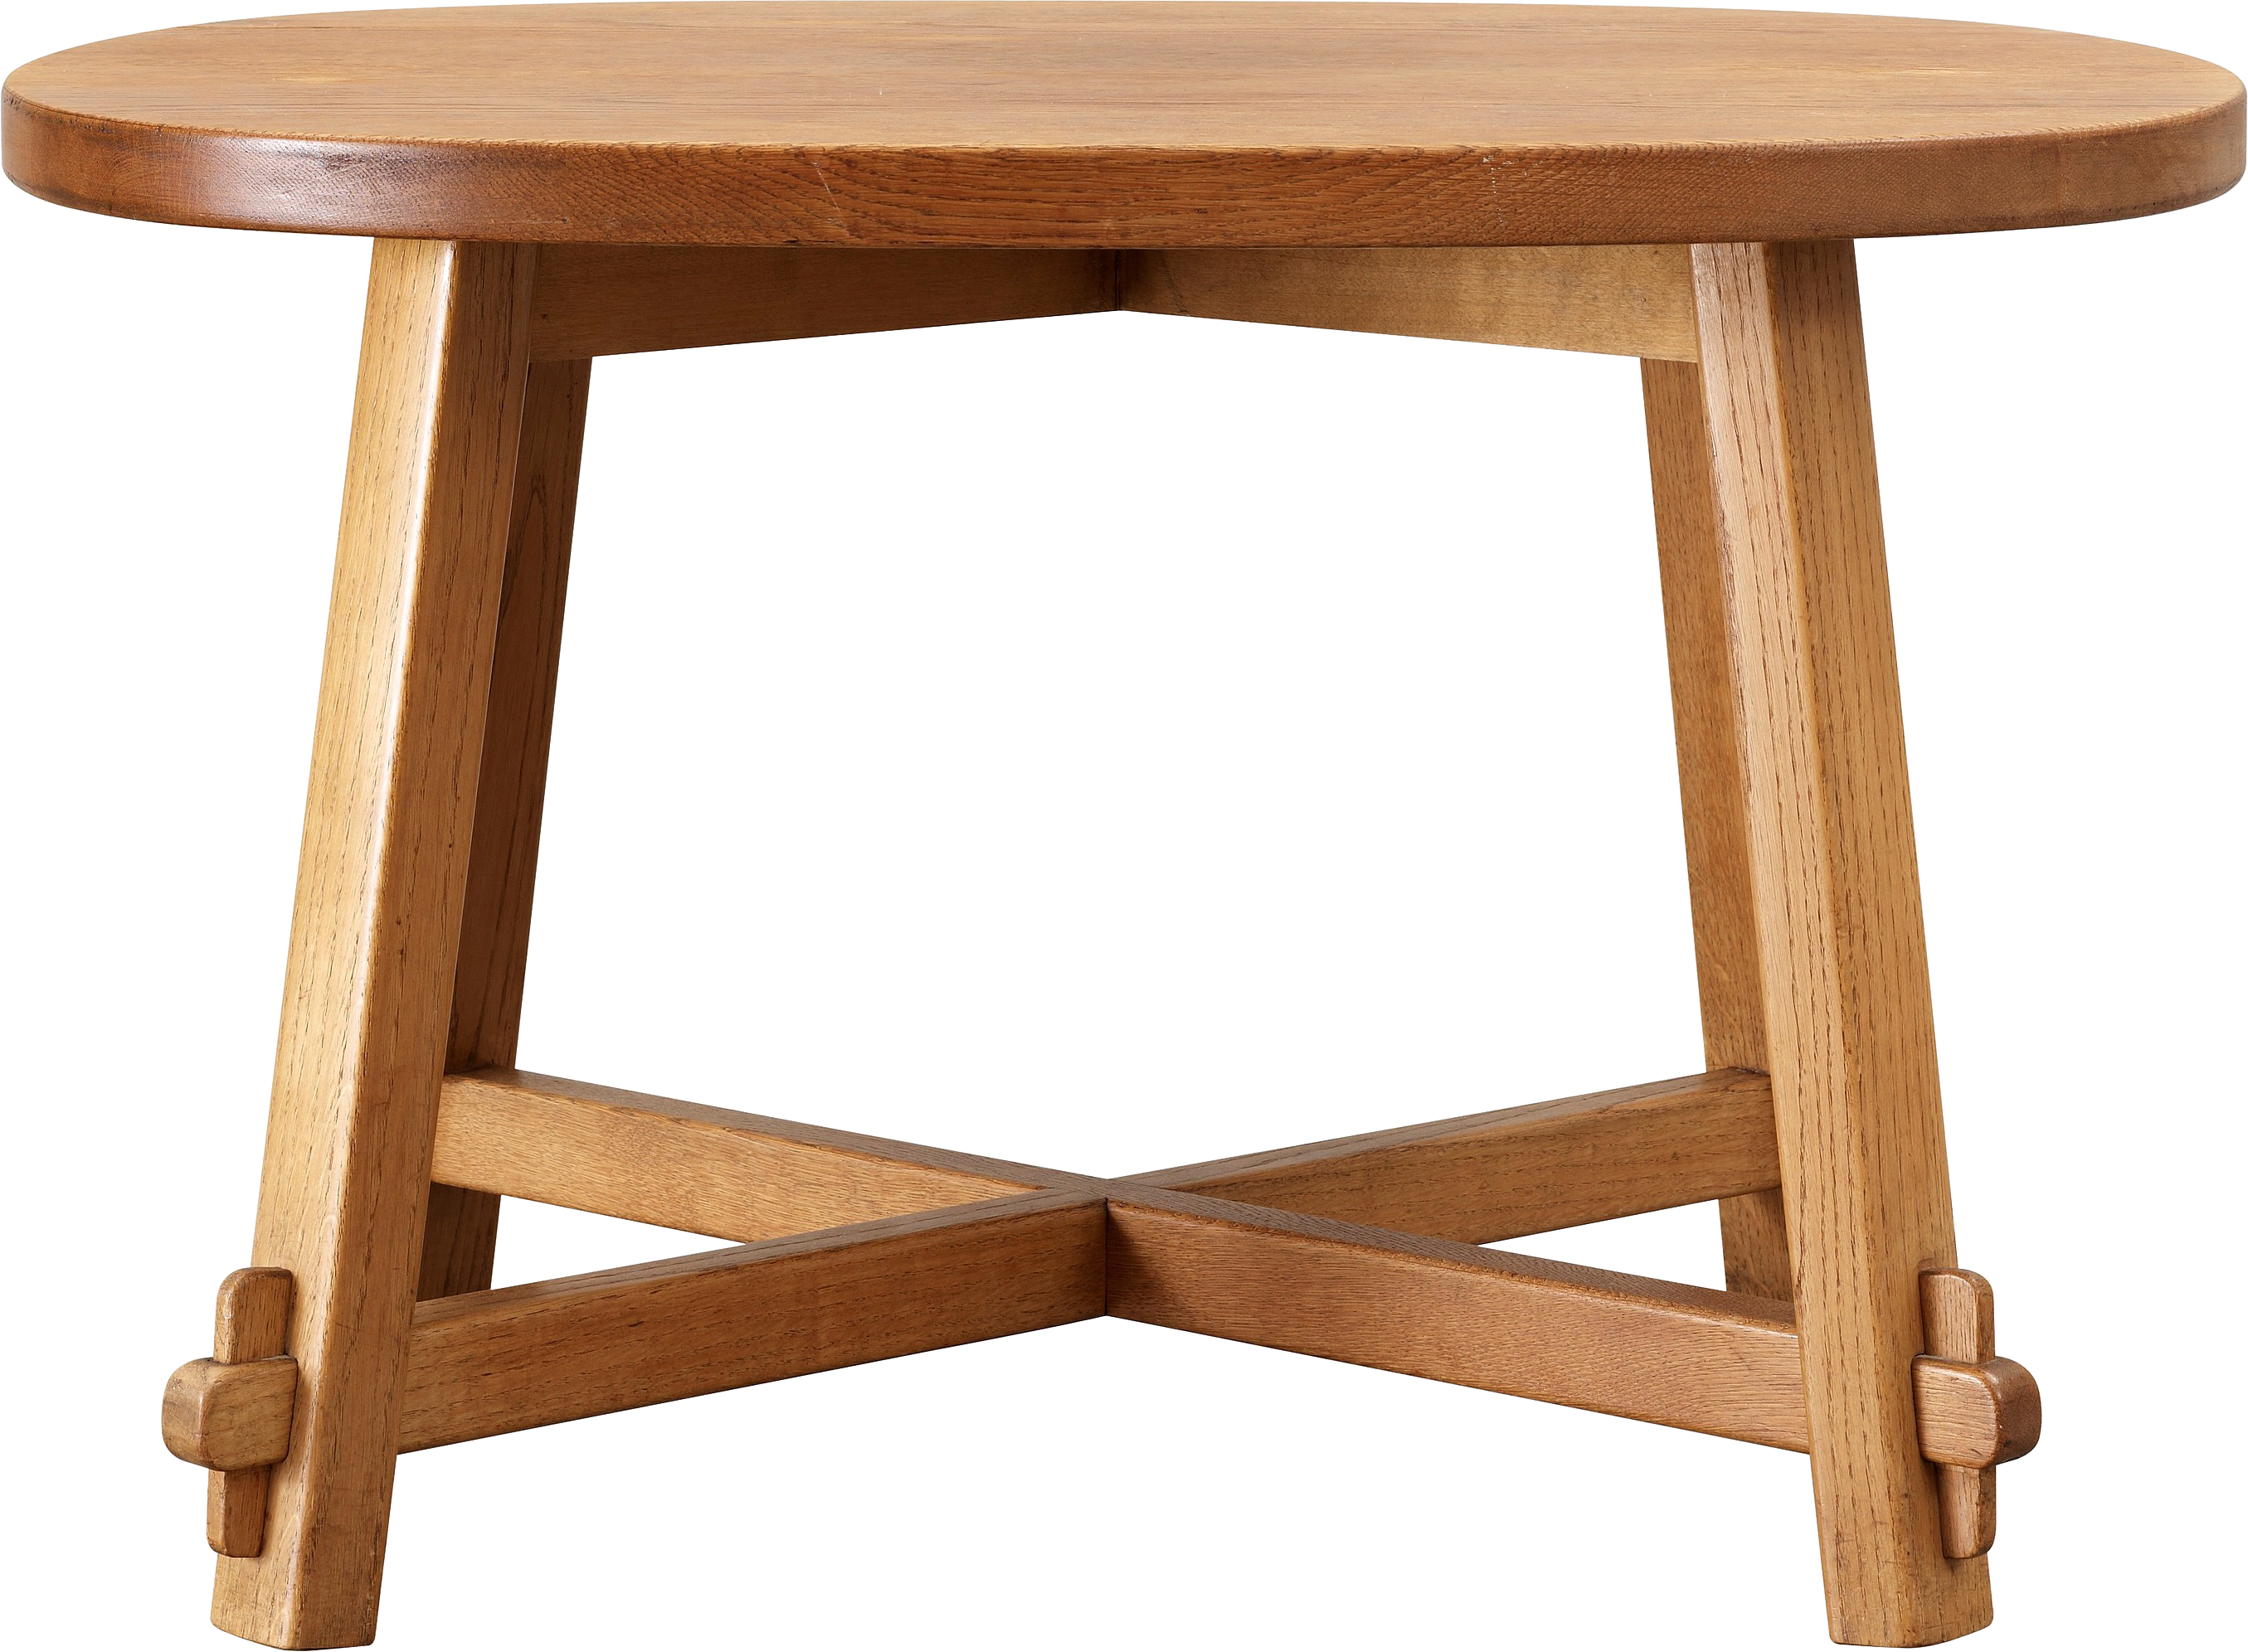 Furniture clipart wooden table Table image tables Wooden PNG